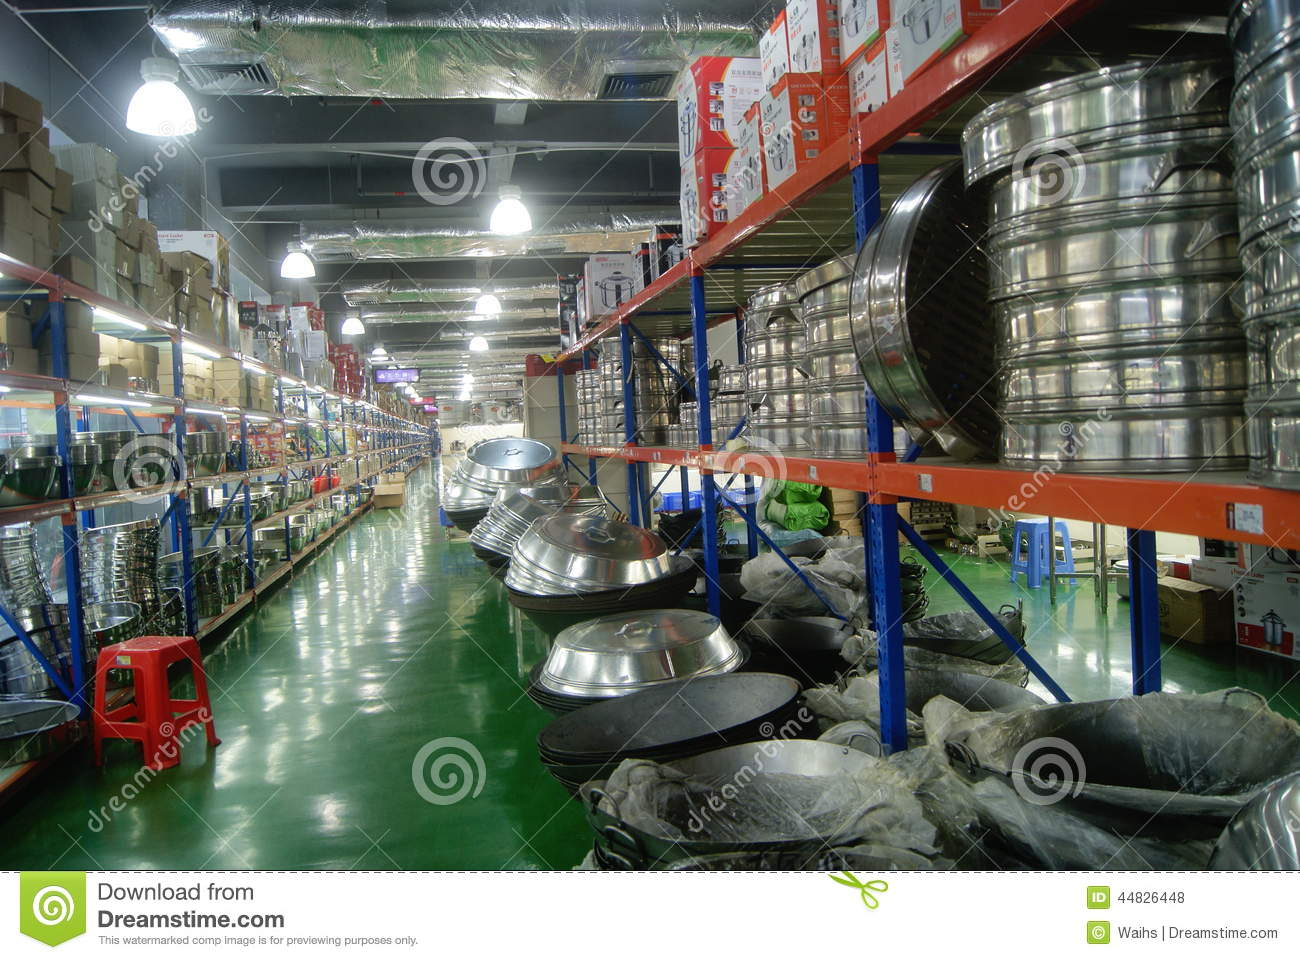 shenzhen china kitchen supplies store editorial stock photo